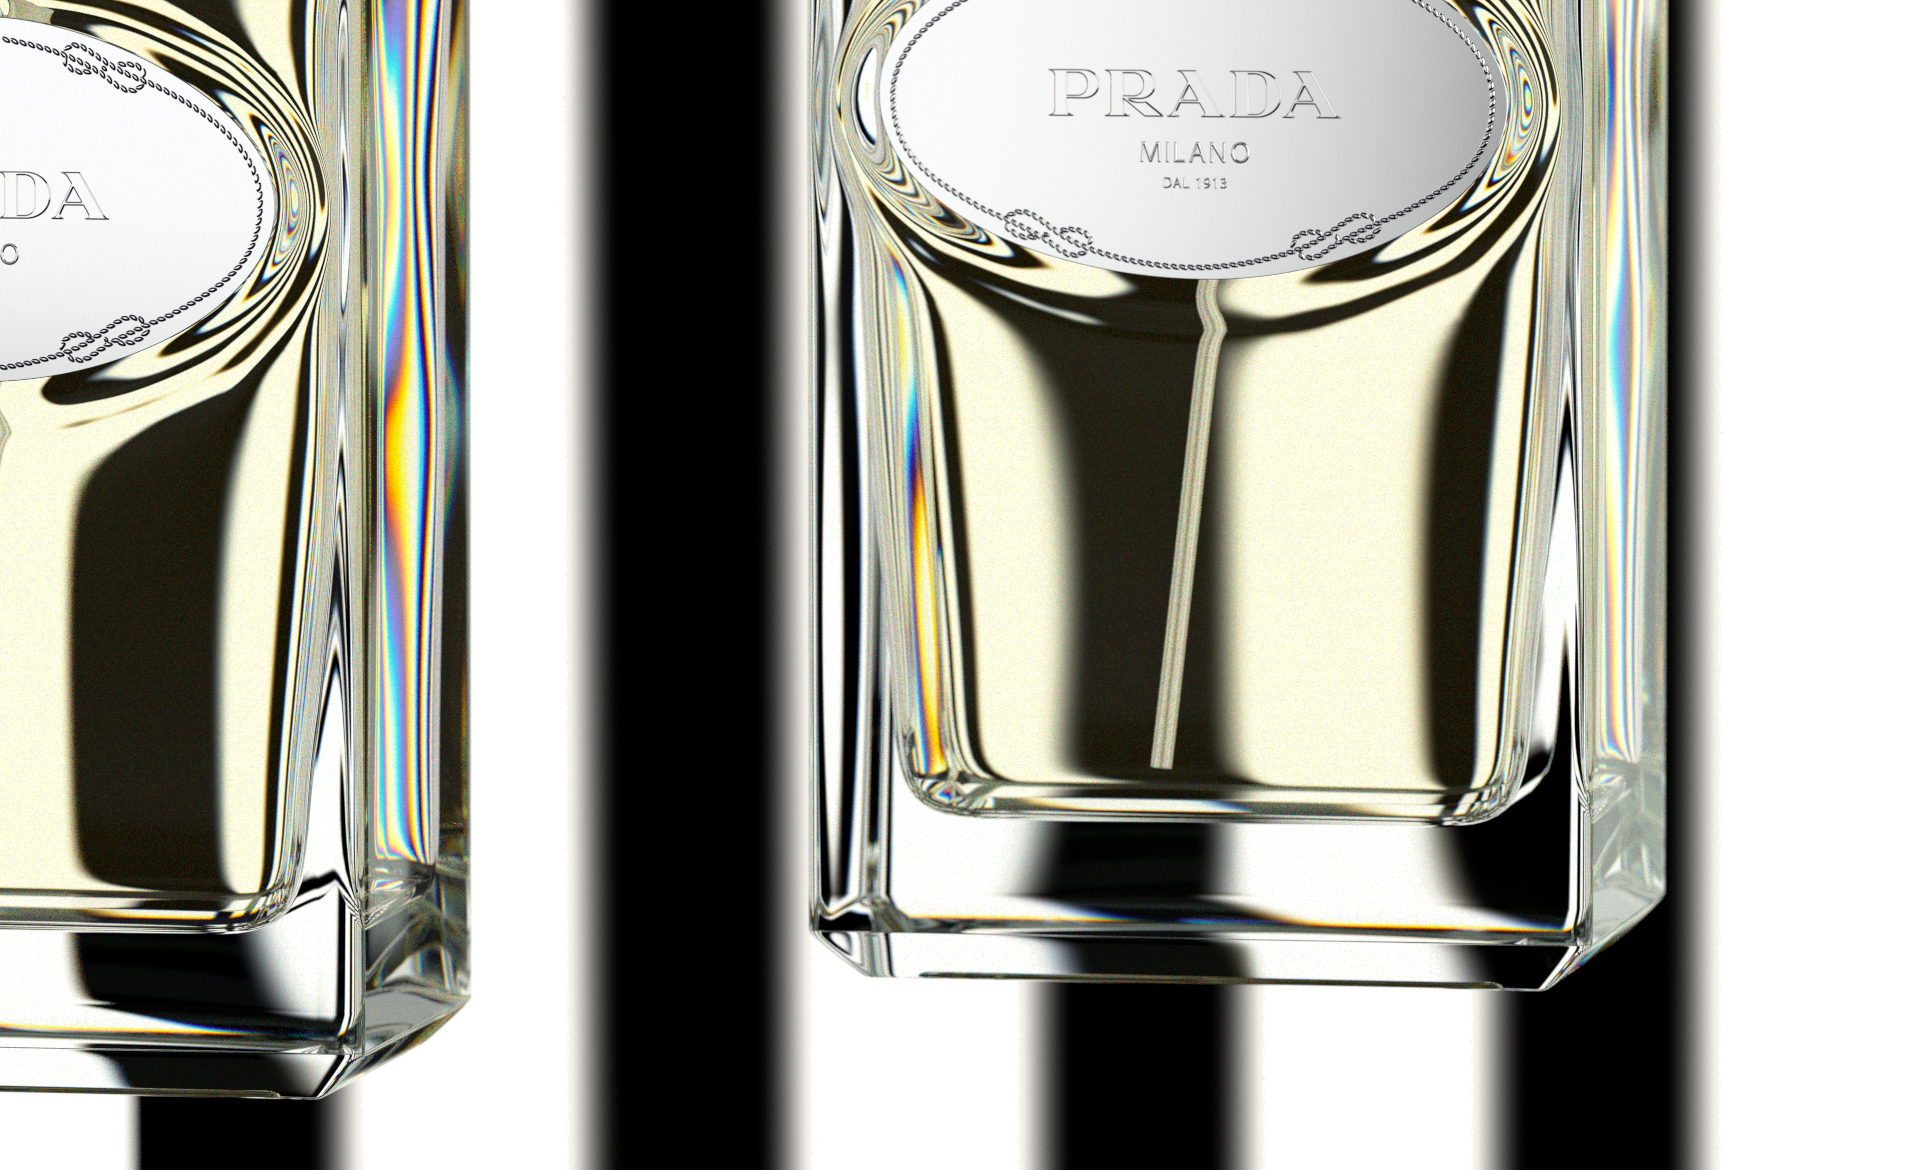 Prada_0008_Layer 1.jpg